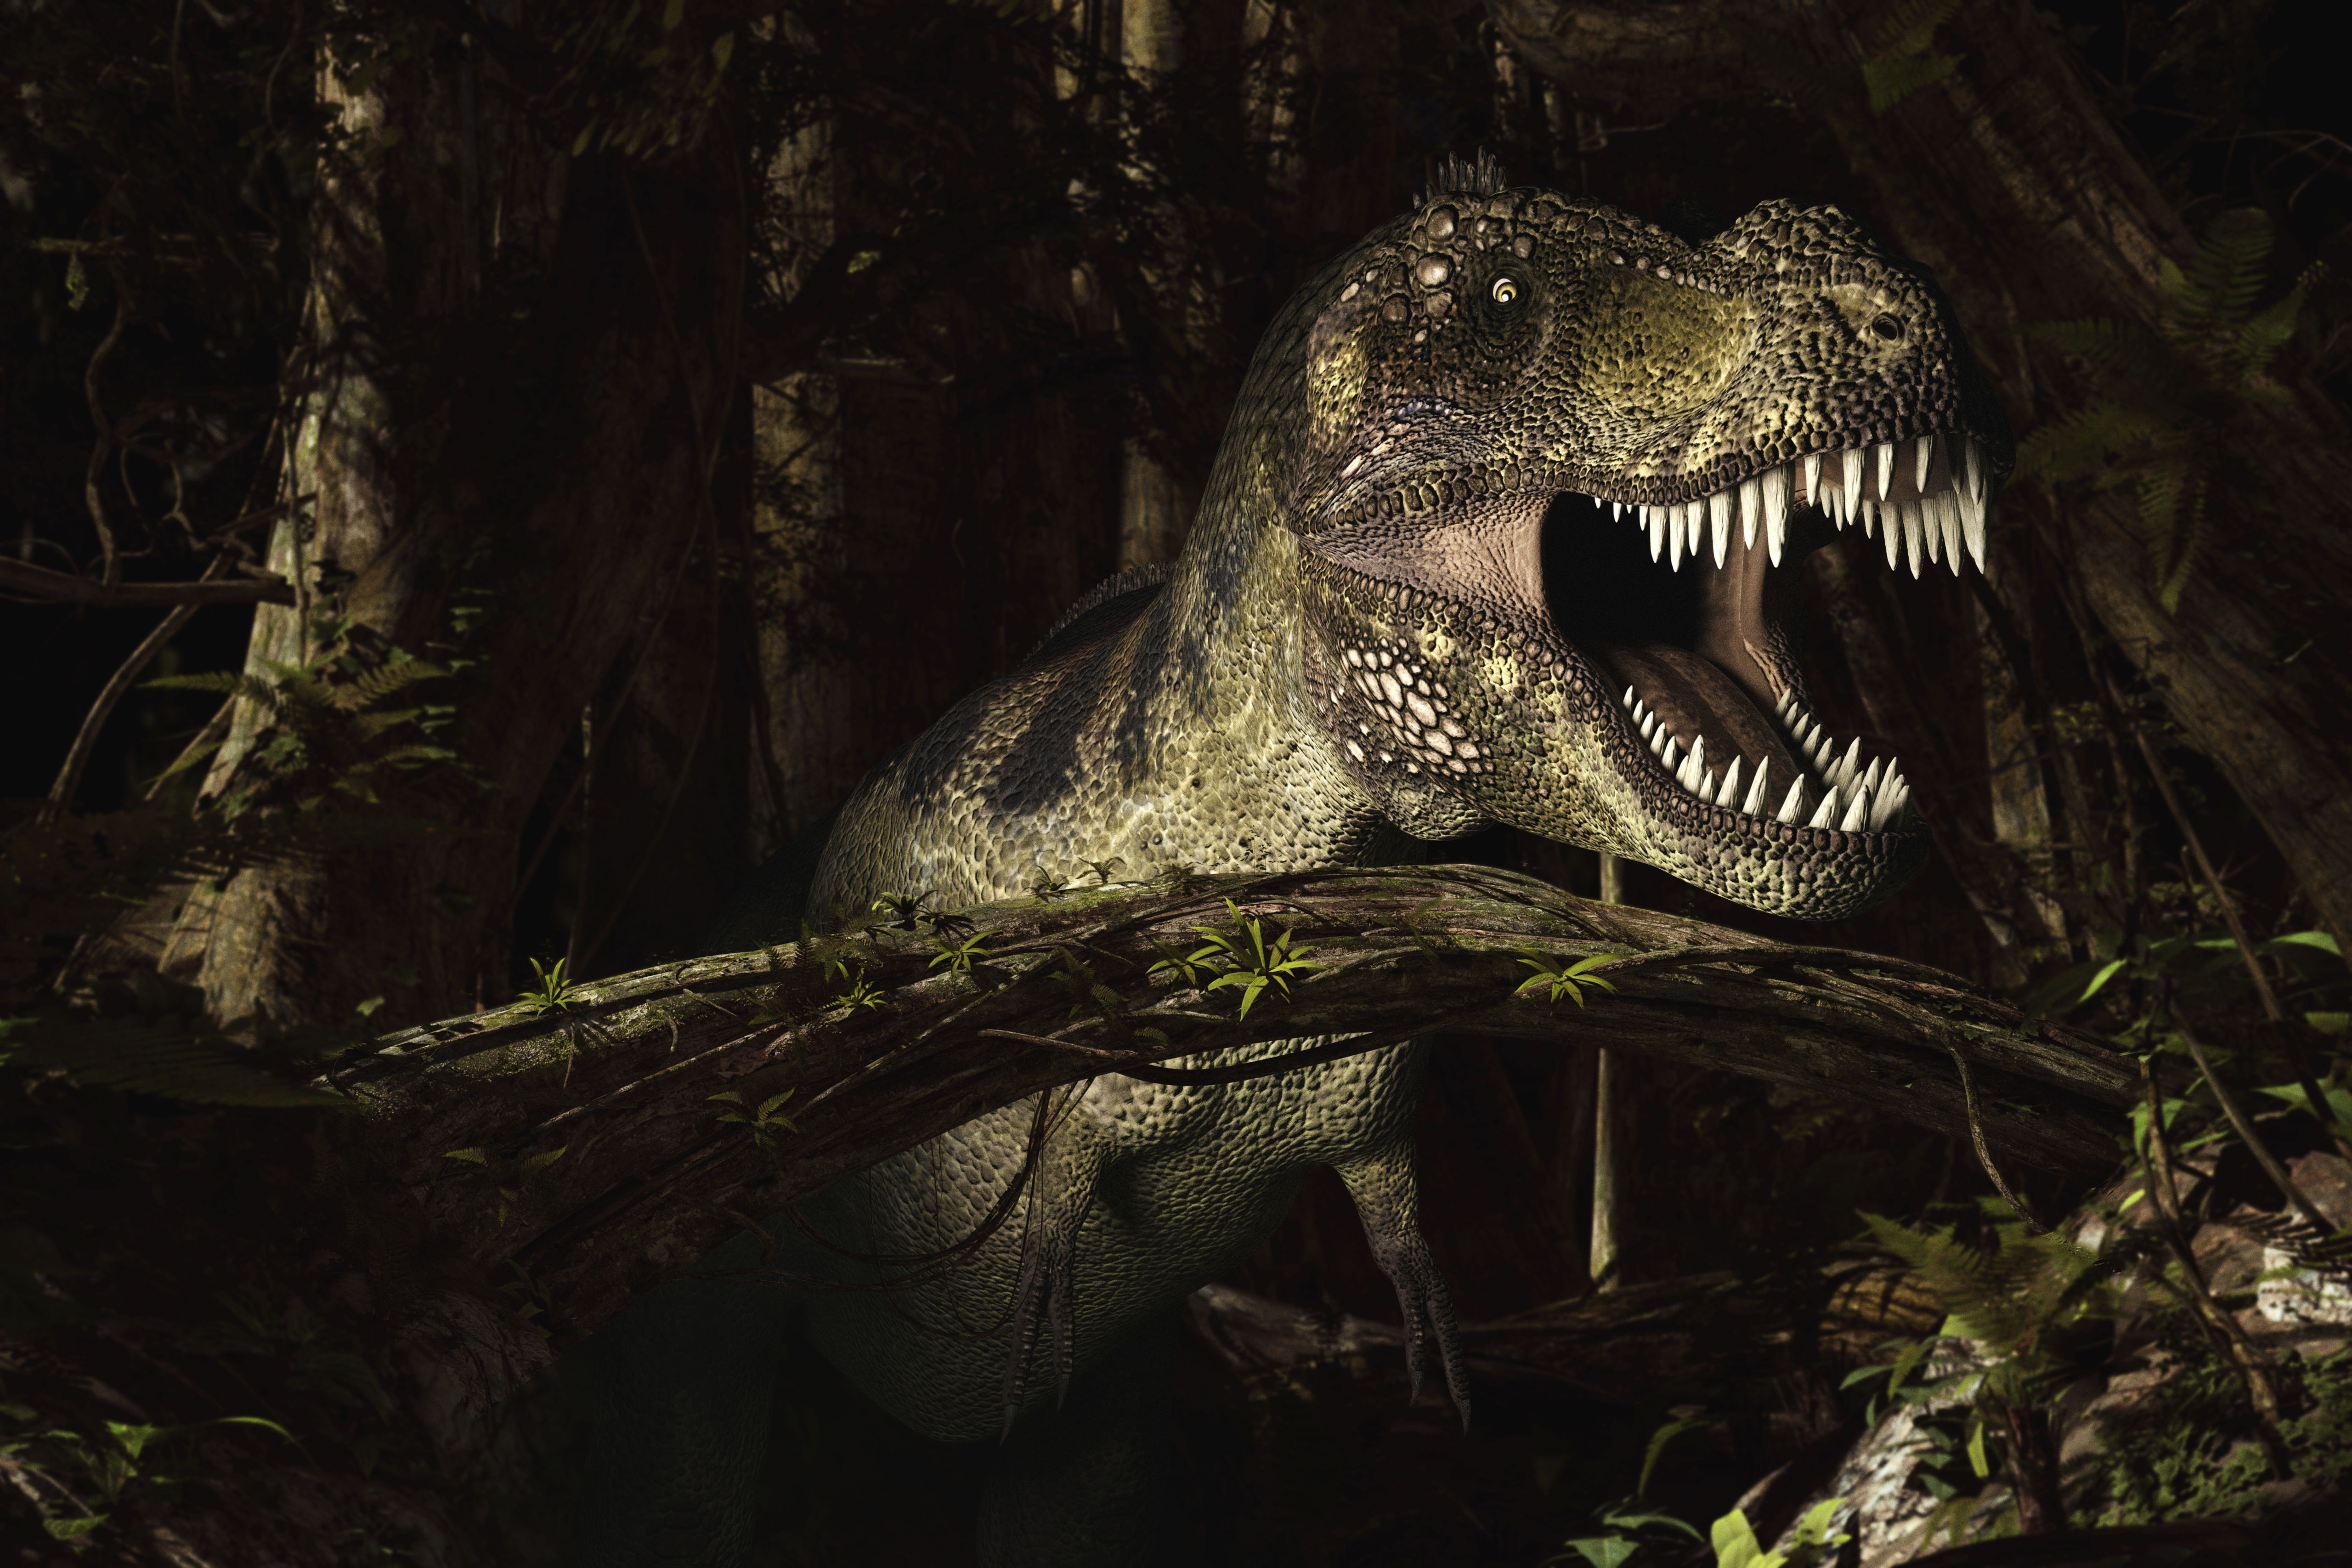 10 facts about tyrannosaurus rex king of the dinosaurs